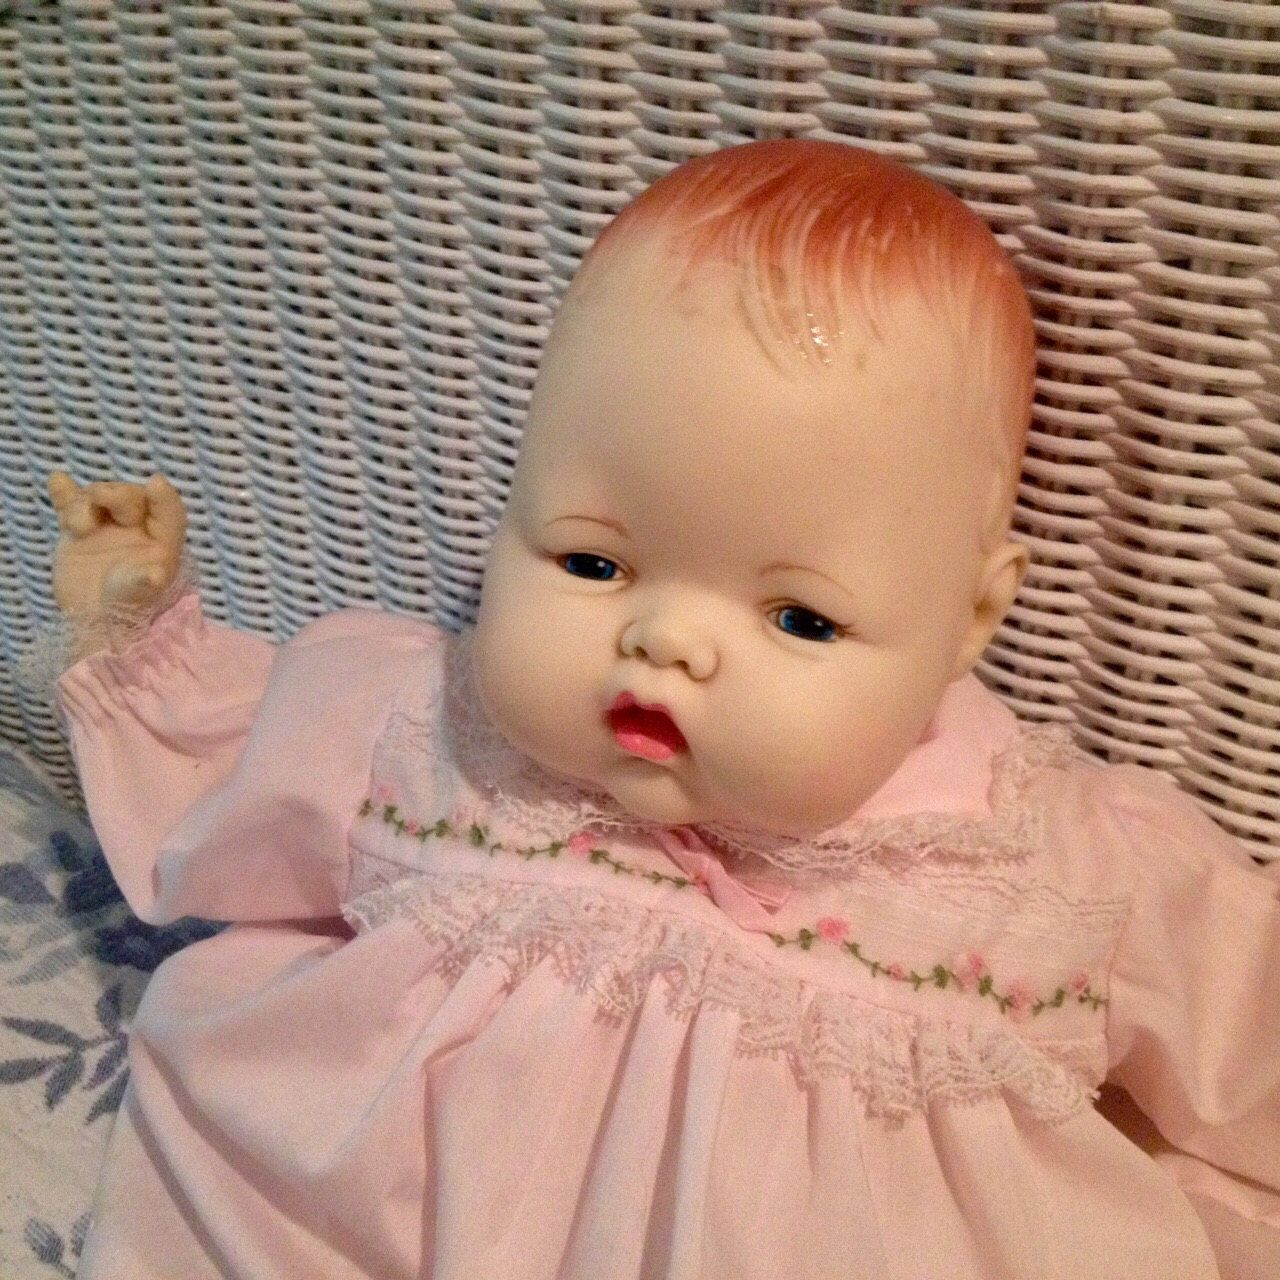 Pretty Vintage, Ideal Thumblina Baby Doll by Beyondthegardenwall on Etsy https://www.etsy.com/listing/216304712/pretty-vintage-ideal-thumblina-baby-doll